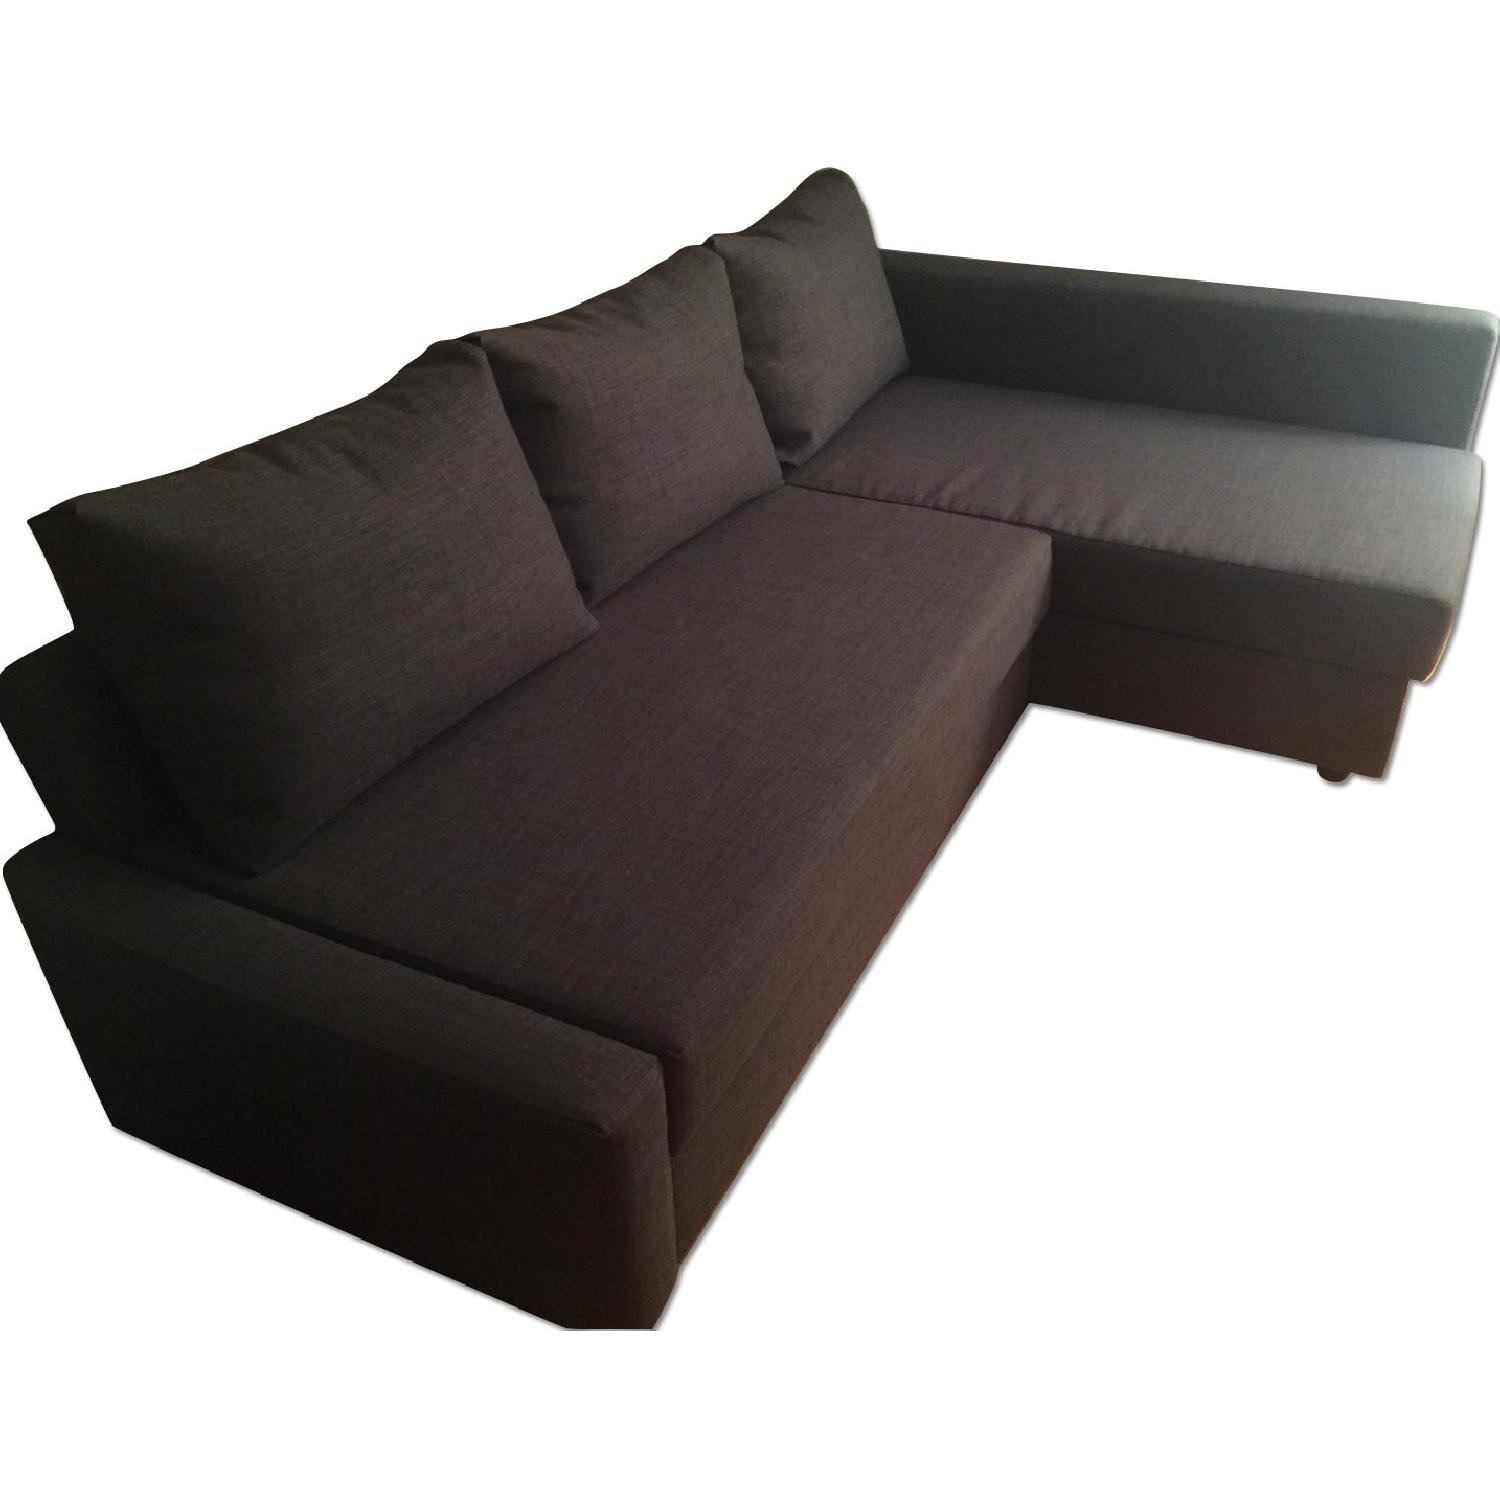 Friheten Ikea Sofa Bed Review